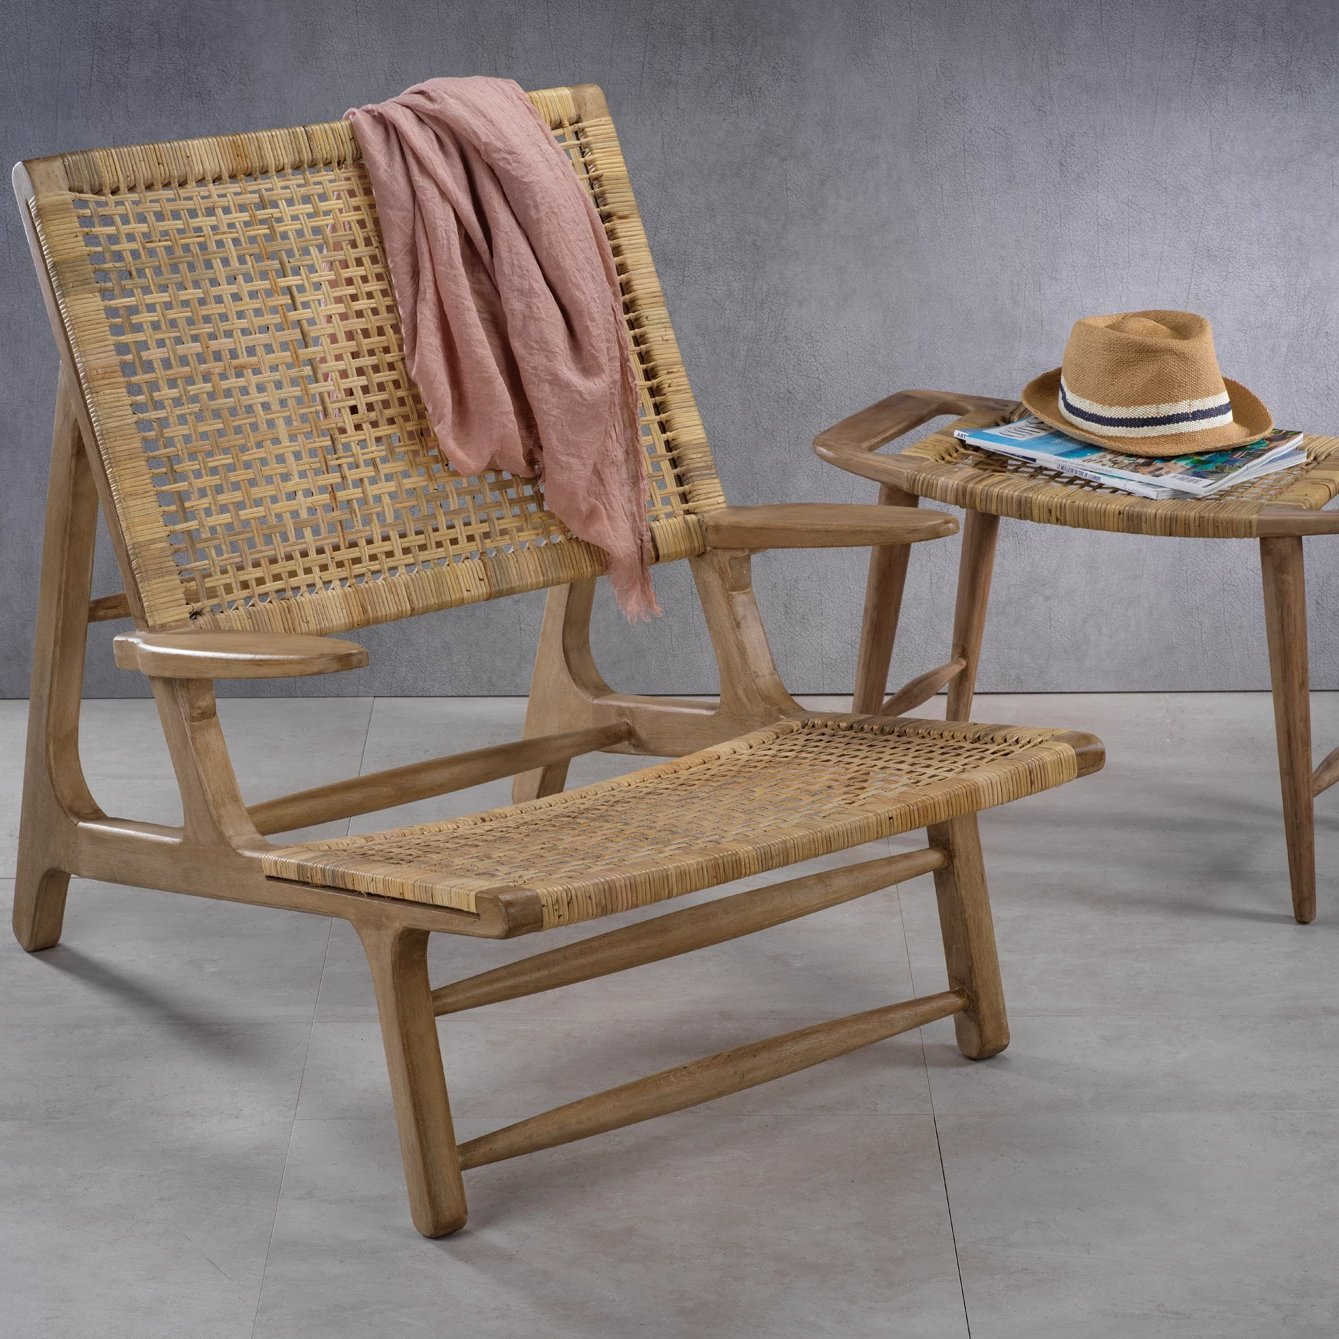 Sand River Mango Wood & Cane Lounge Chair - CARLYLE AVENUE